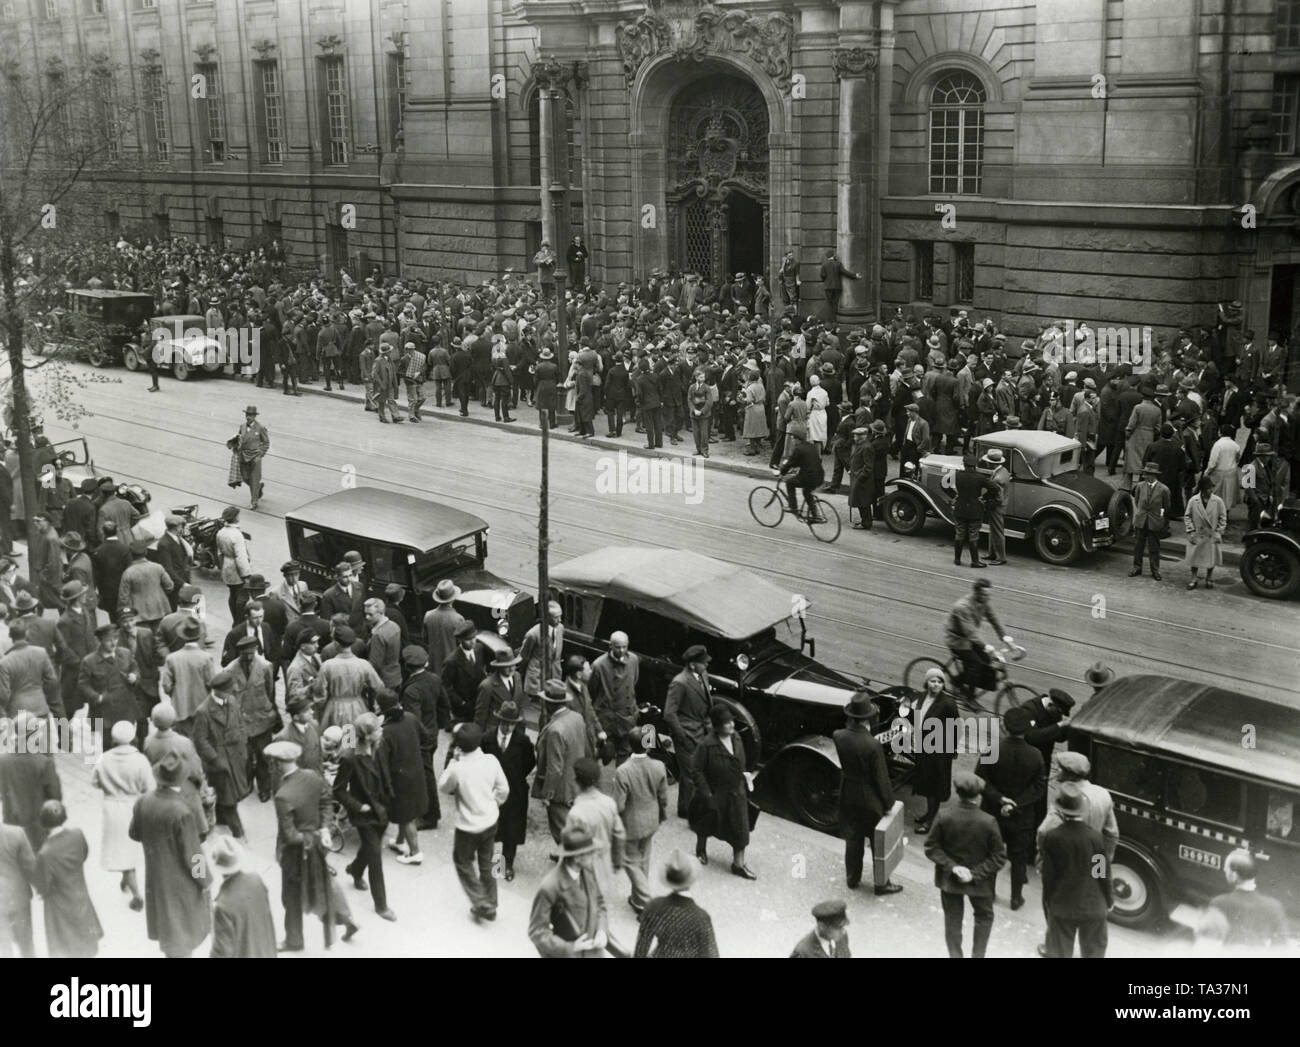 Hundreds of onlookers are waiting outside the Criminal Court Moabit for the arrival of witnesses. On this day Adolf Hitler was invited as a witness in the Eden Dance Palace trial. - Stock Image